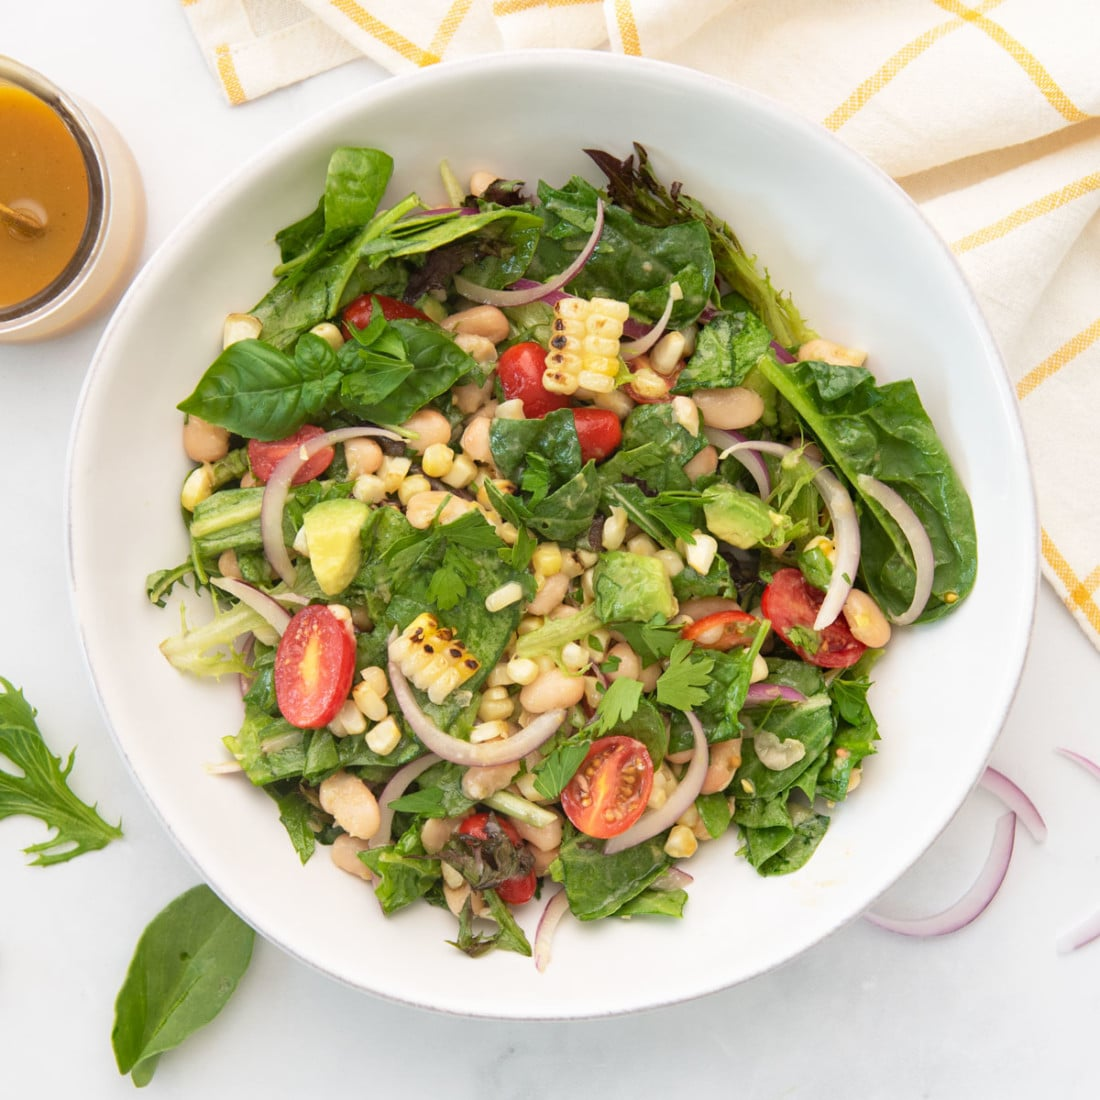 overhead view of salad with greens, grilled corn, tomatoes, beans, red onion, and avocado